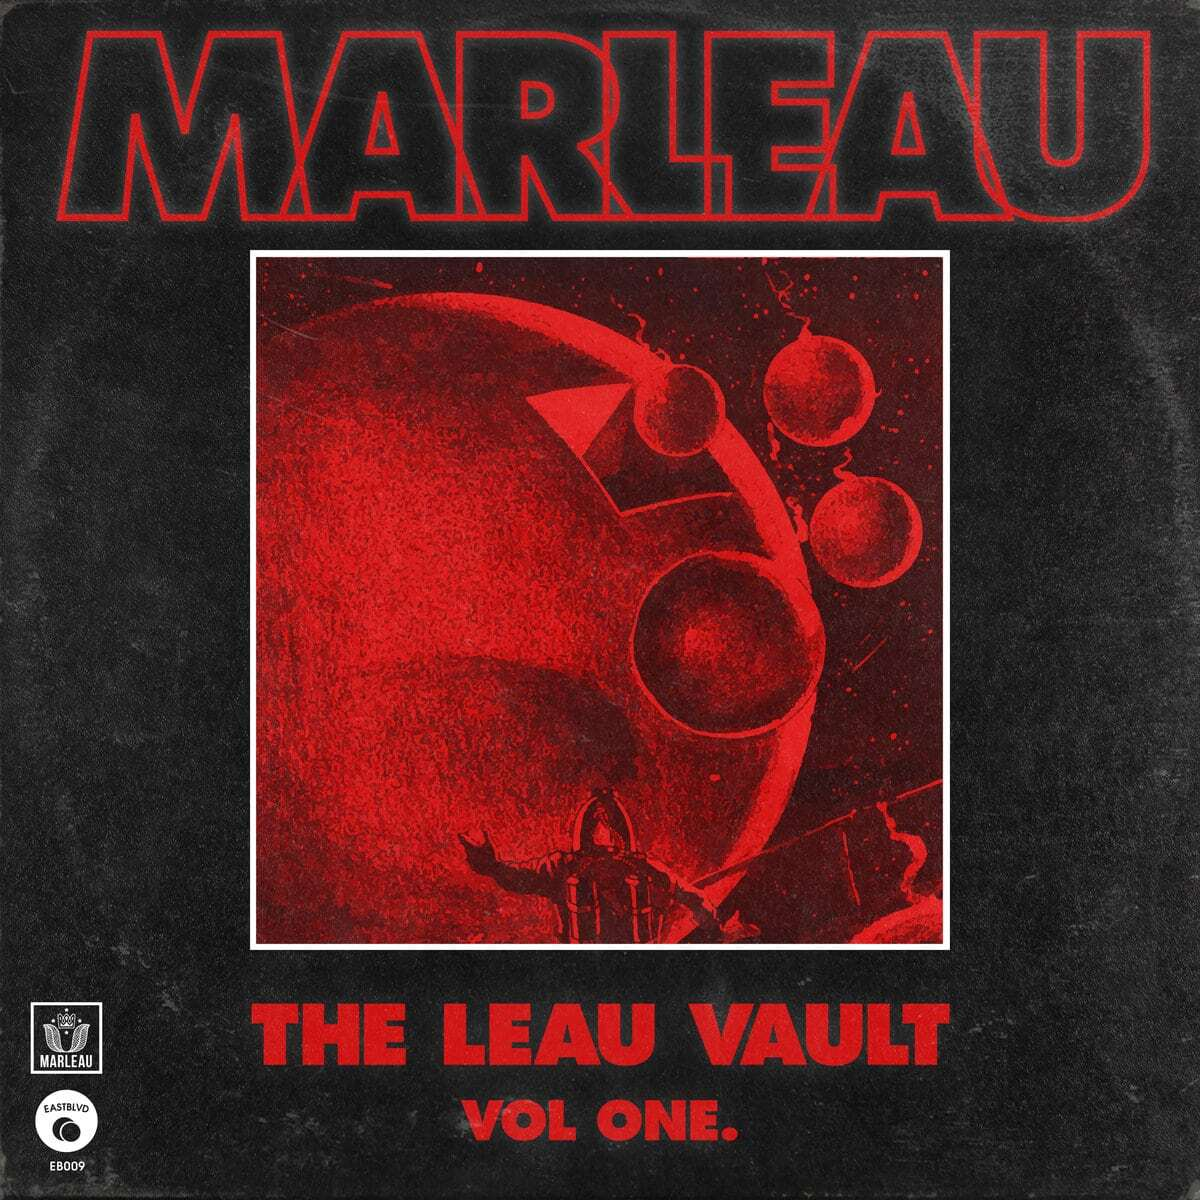 Marleau - The Leau Vault Vol. One